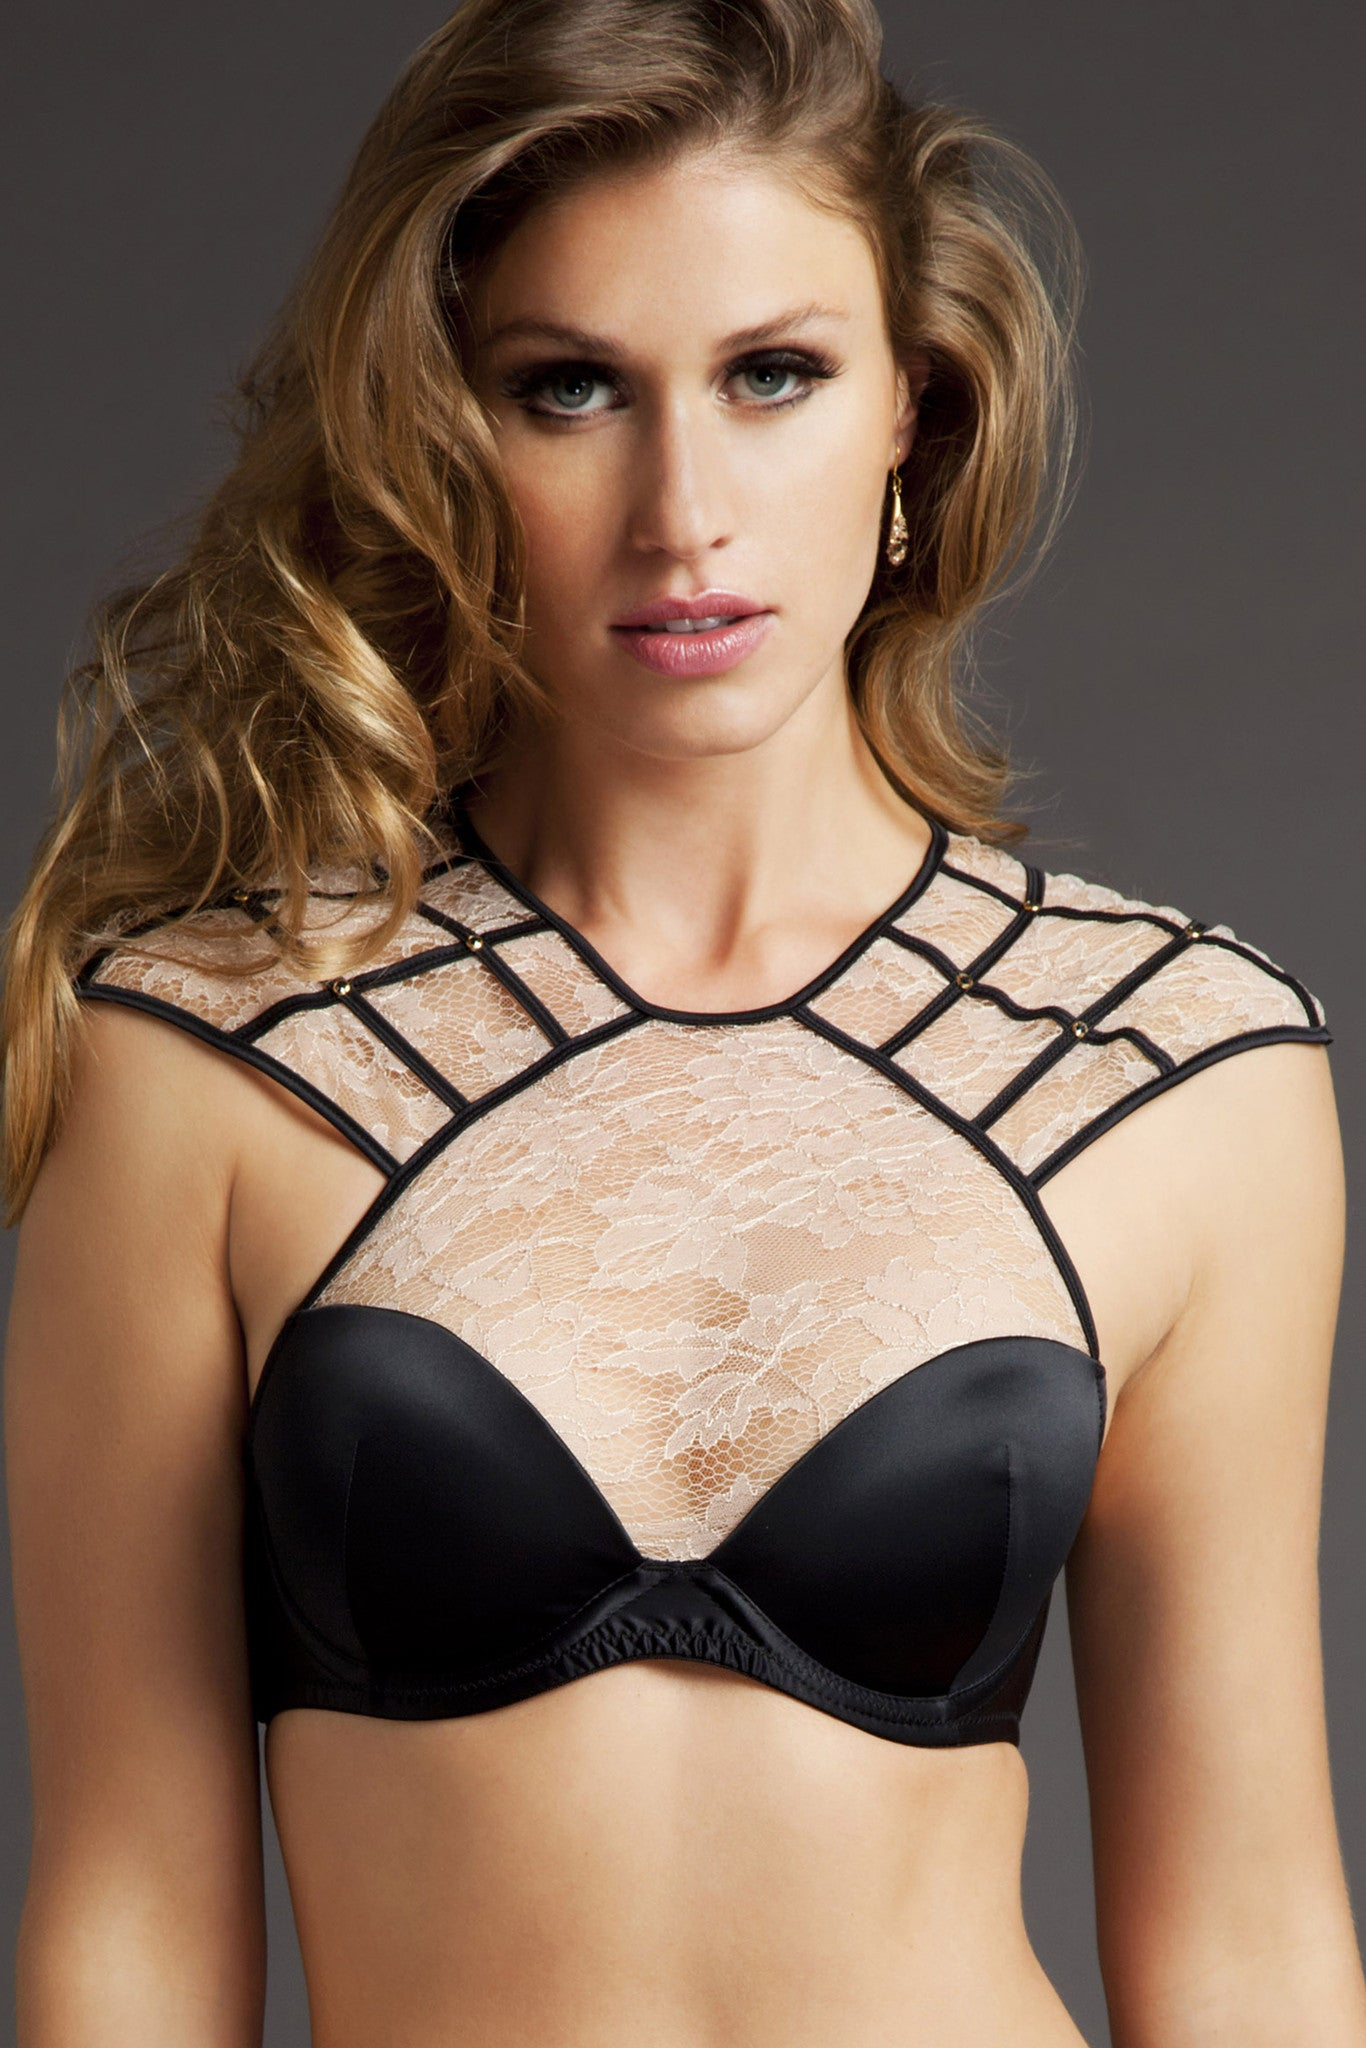 Tatu Couture Xena Bra in Blush on model